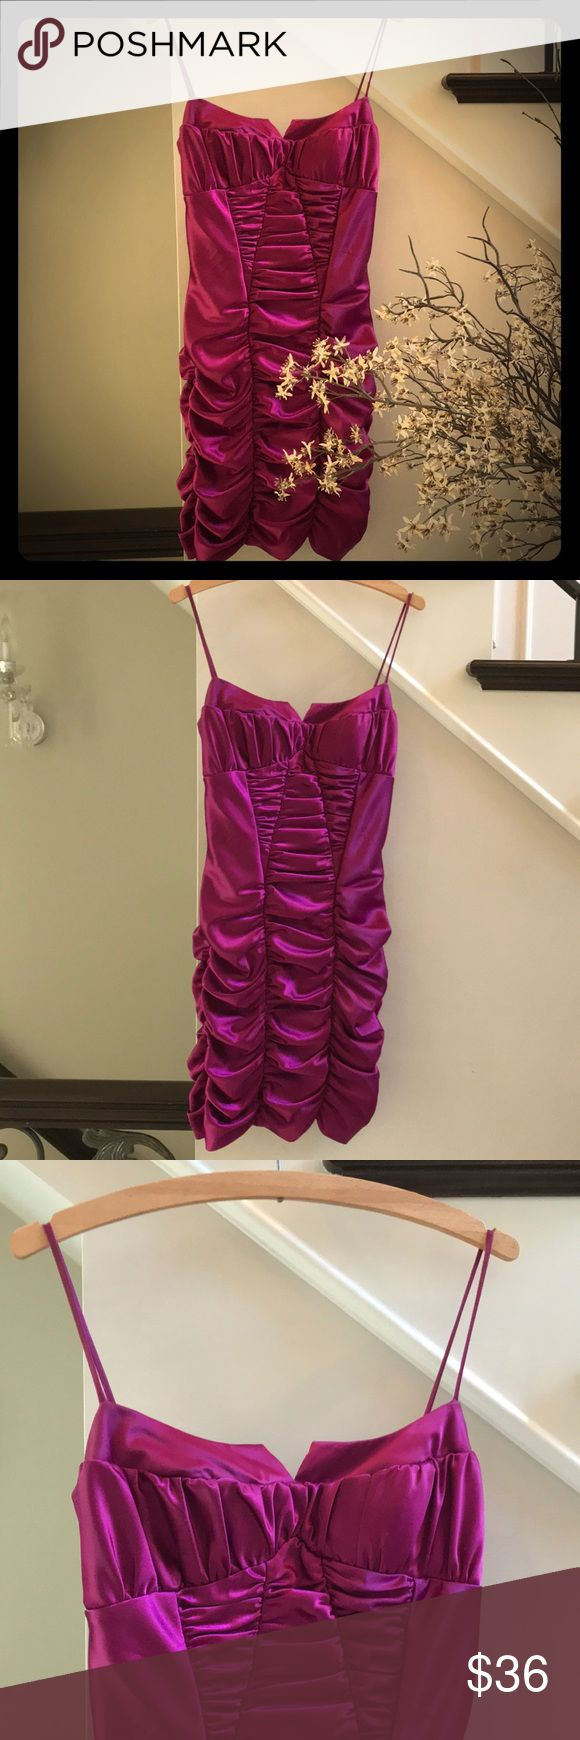 Masquerade Hot Purple Mini Dress HOT HOT HOT! Is the compliment you will get with this definite sexy dress! A Beauty and the Beast inspired design with scrunched fabric that flatters your figure! A peek-a-boo cut out around chest and fitted waist! Spaghetti straps with a zipper in back for an easy fit! Perfect for any party!!! (Some snagging as seen in photo above.) Masquerade Dresses Mini